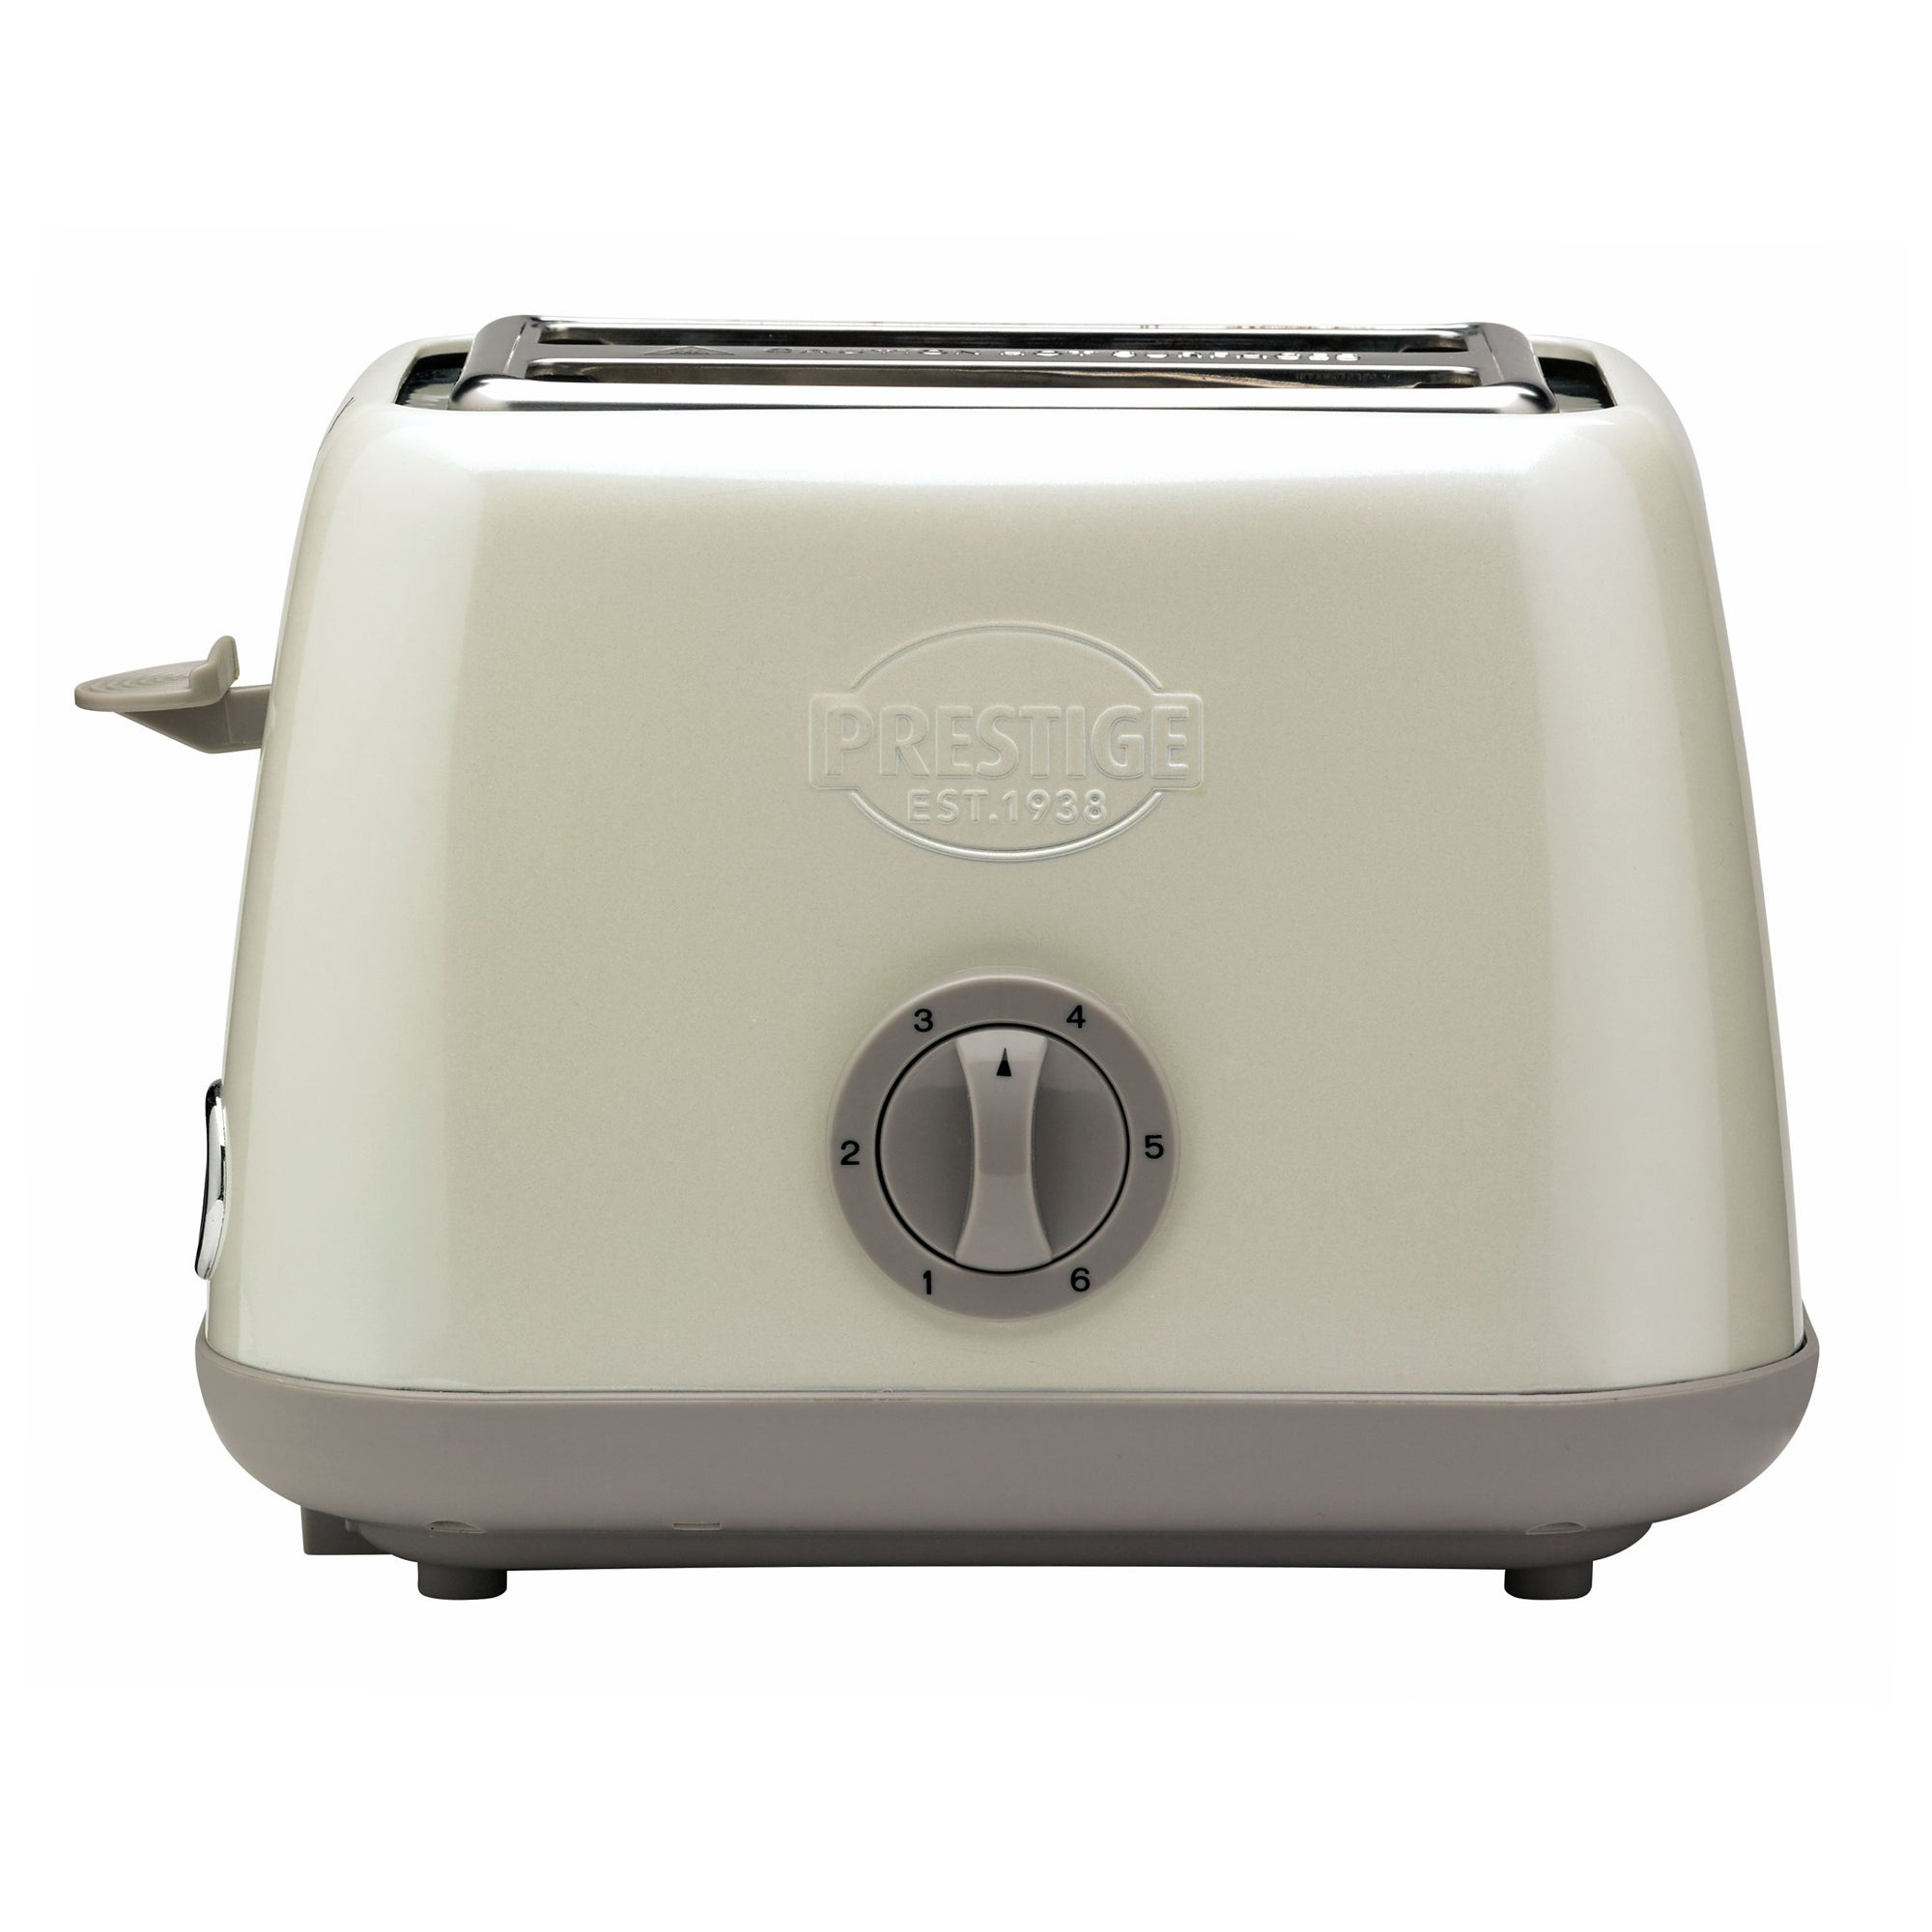 Prestige Heritage Almond 2 Slice Toaster White And Grey